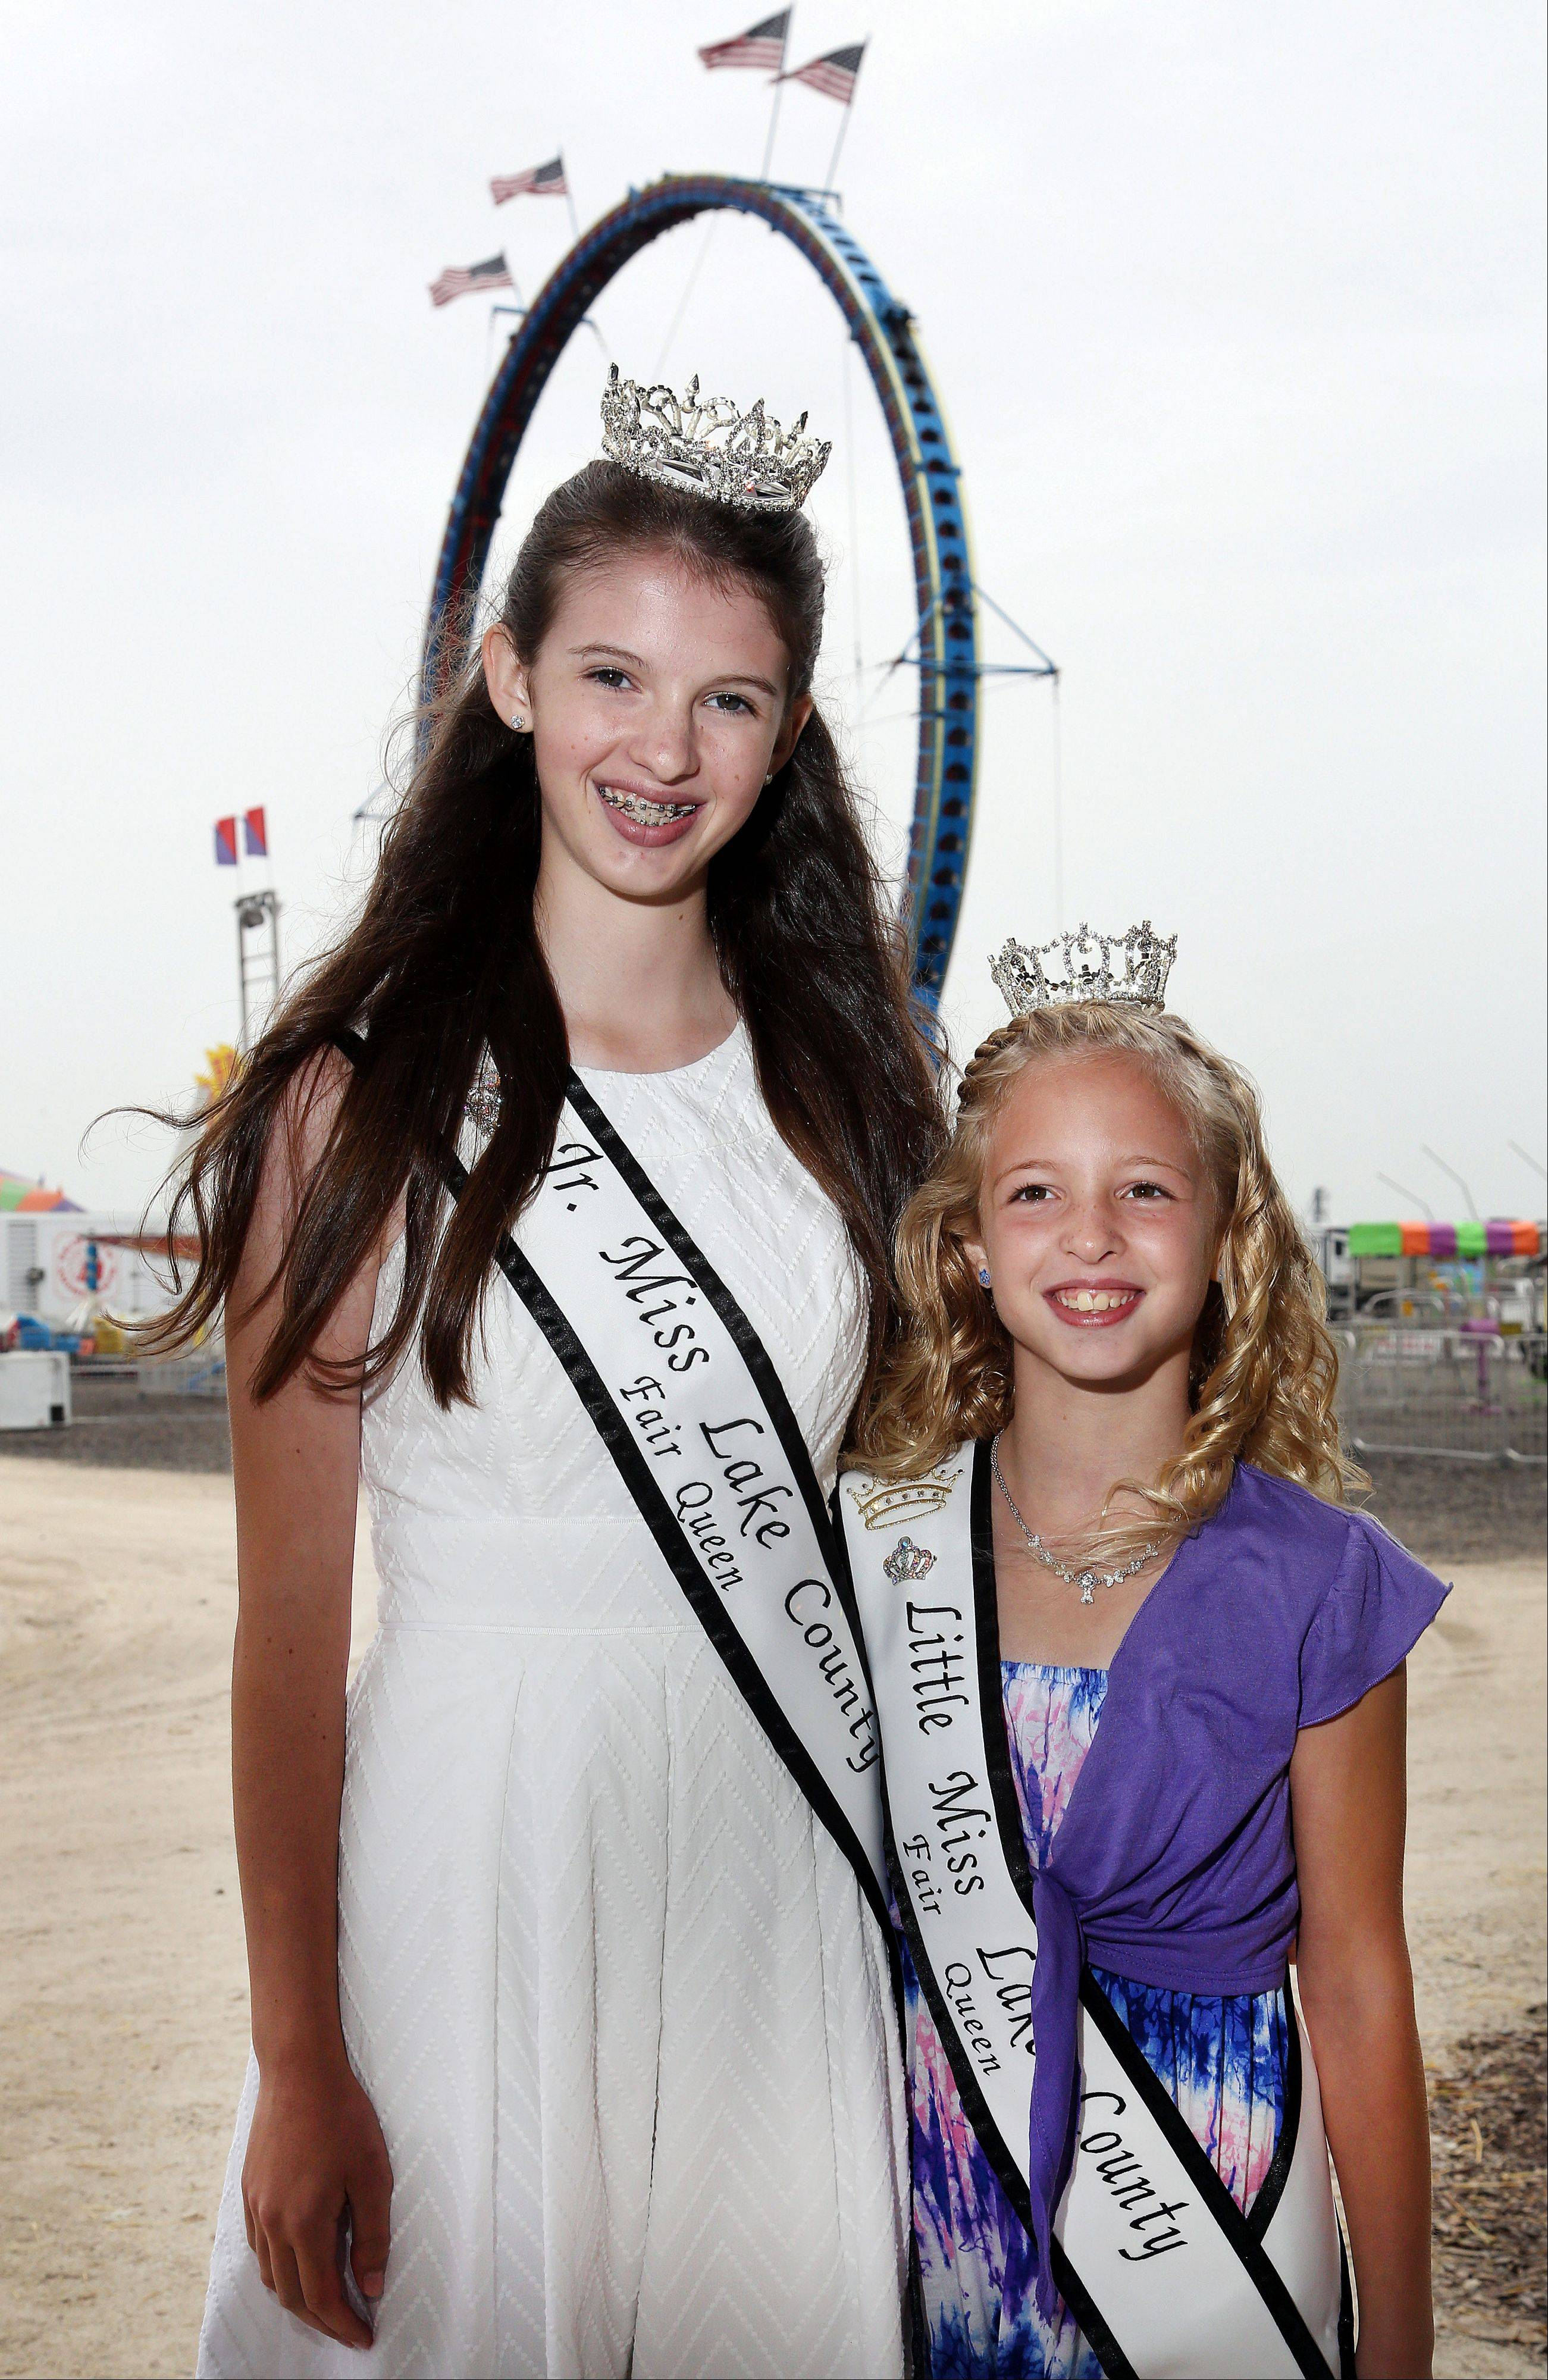 Jr. Miss Lake County Charlotte Roberts, 13, of Grayslake and Little Miss Lake County Victoria Weaver, 8, of Mundelein.